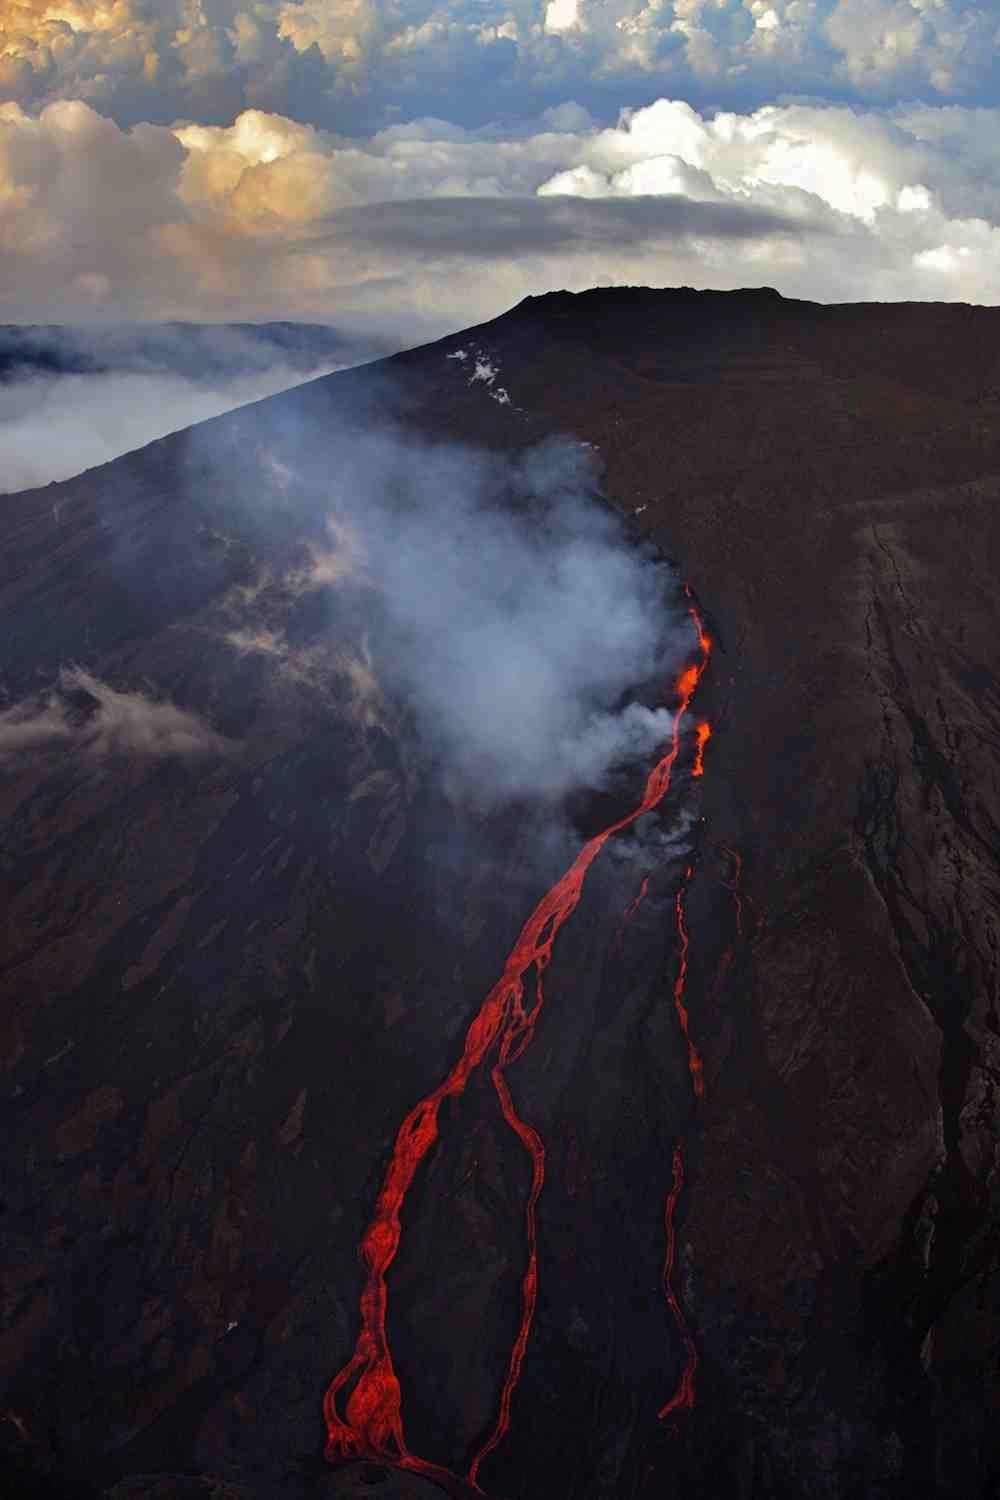 La Fournaise - the eruptive fissure and lava flow view at a thinning - photo Hervé Douris / #gotoreunion / Twitter